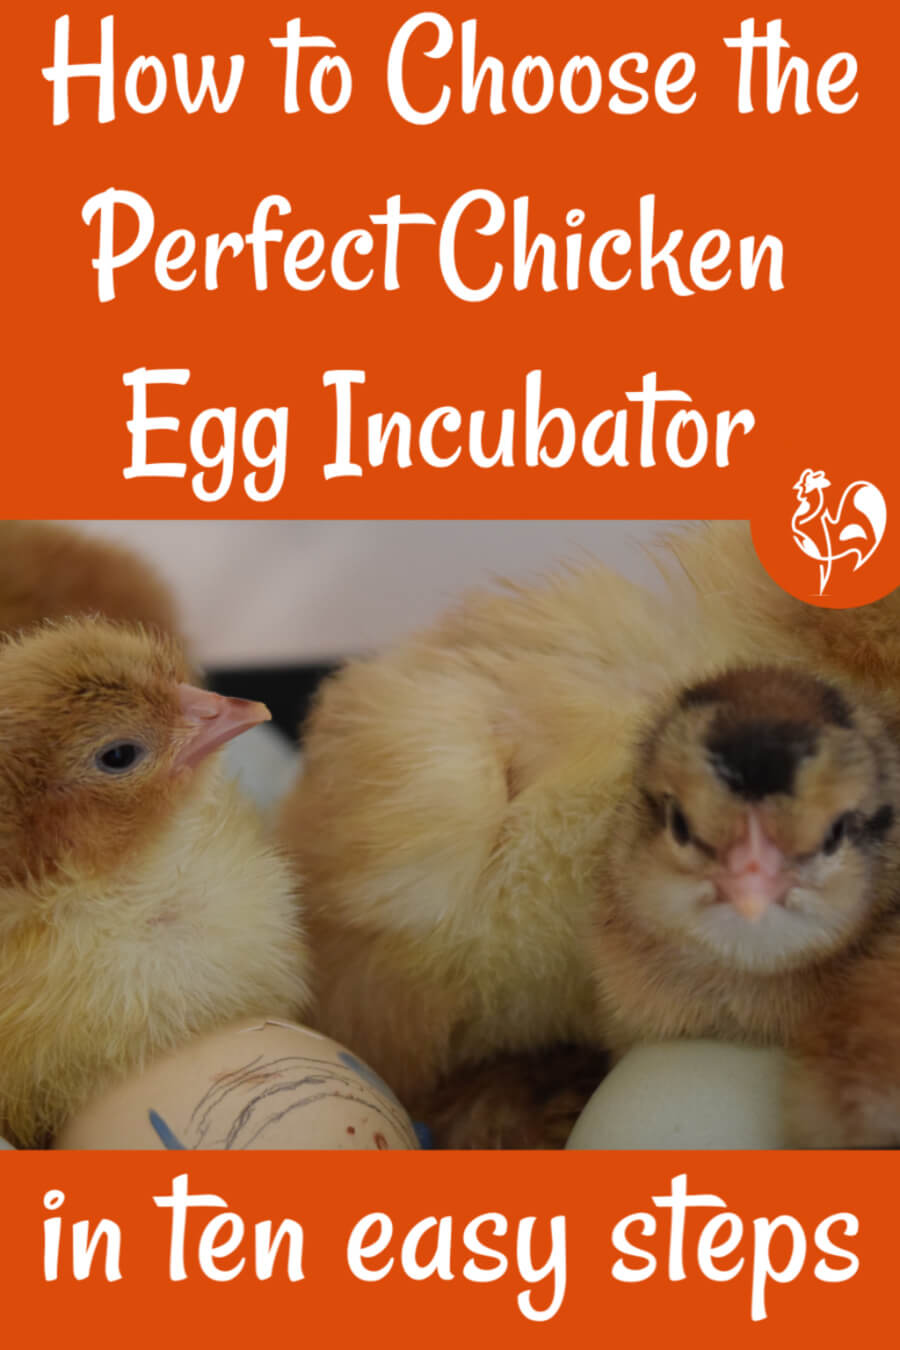 Choosing the best incubator for your needs.